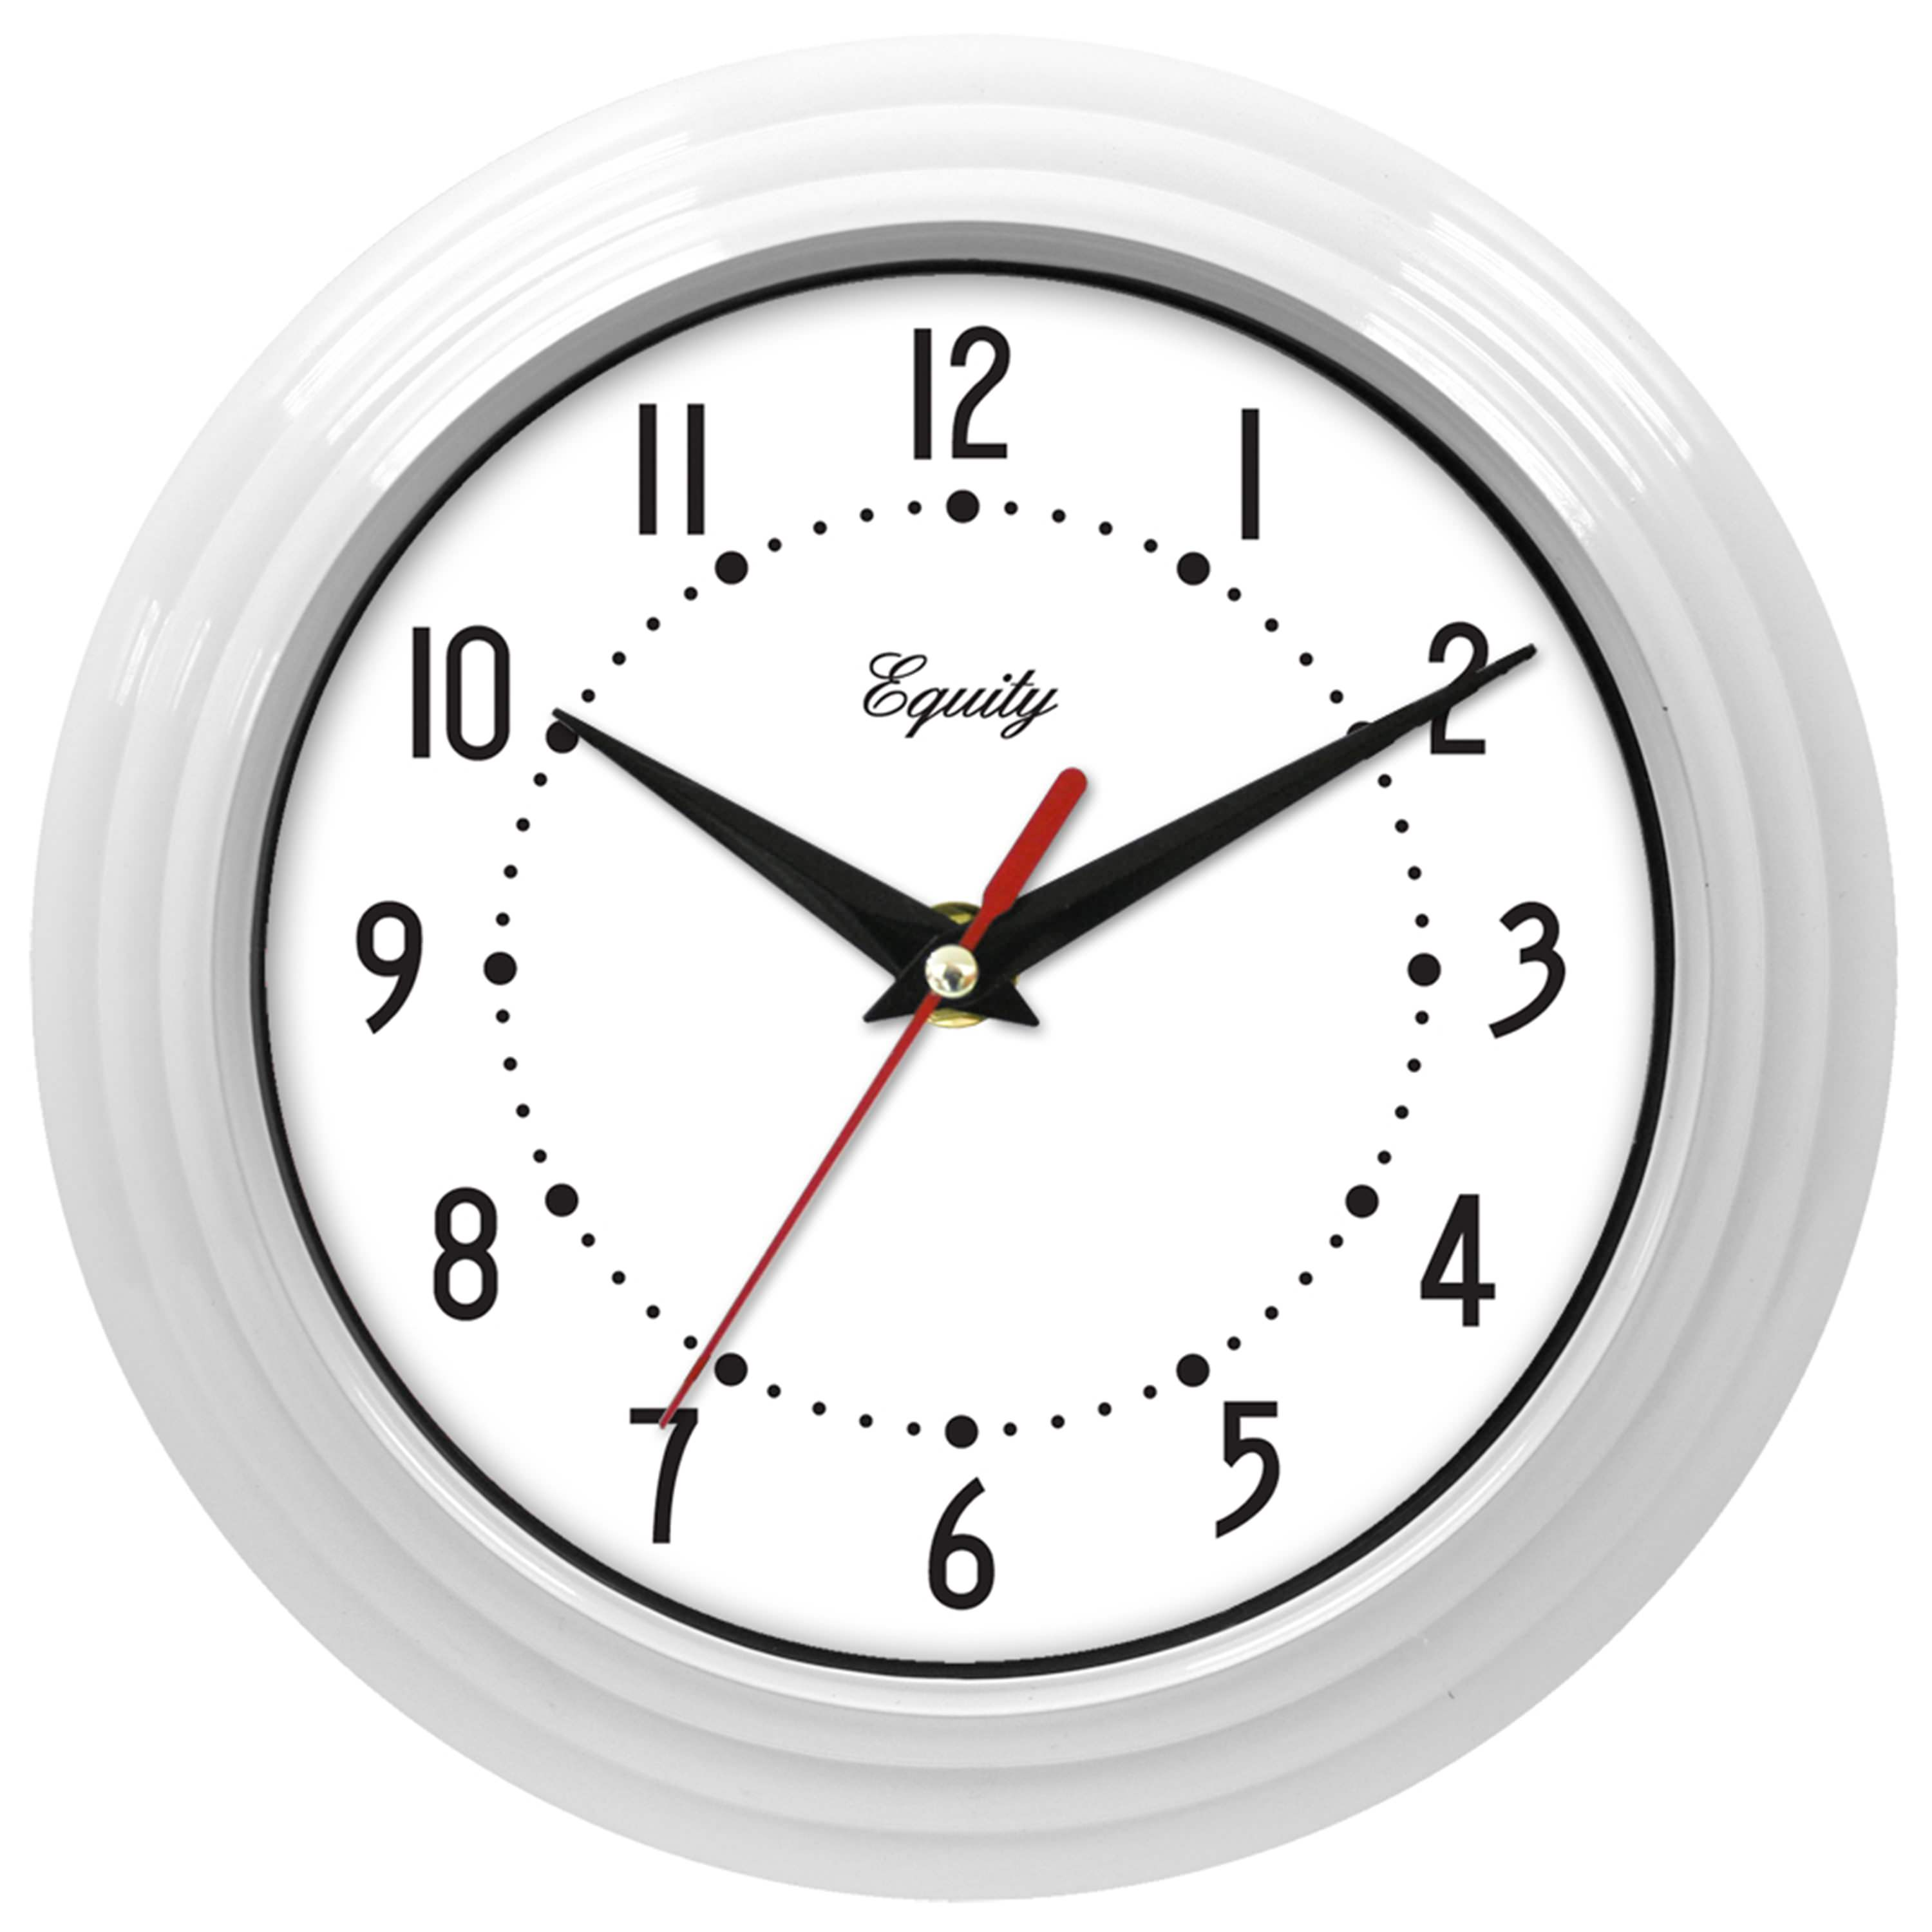 "Equity by La Crosse 8"" White Analog Wall Clock"